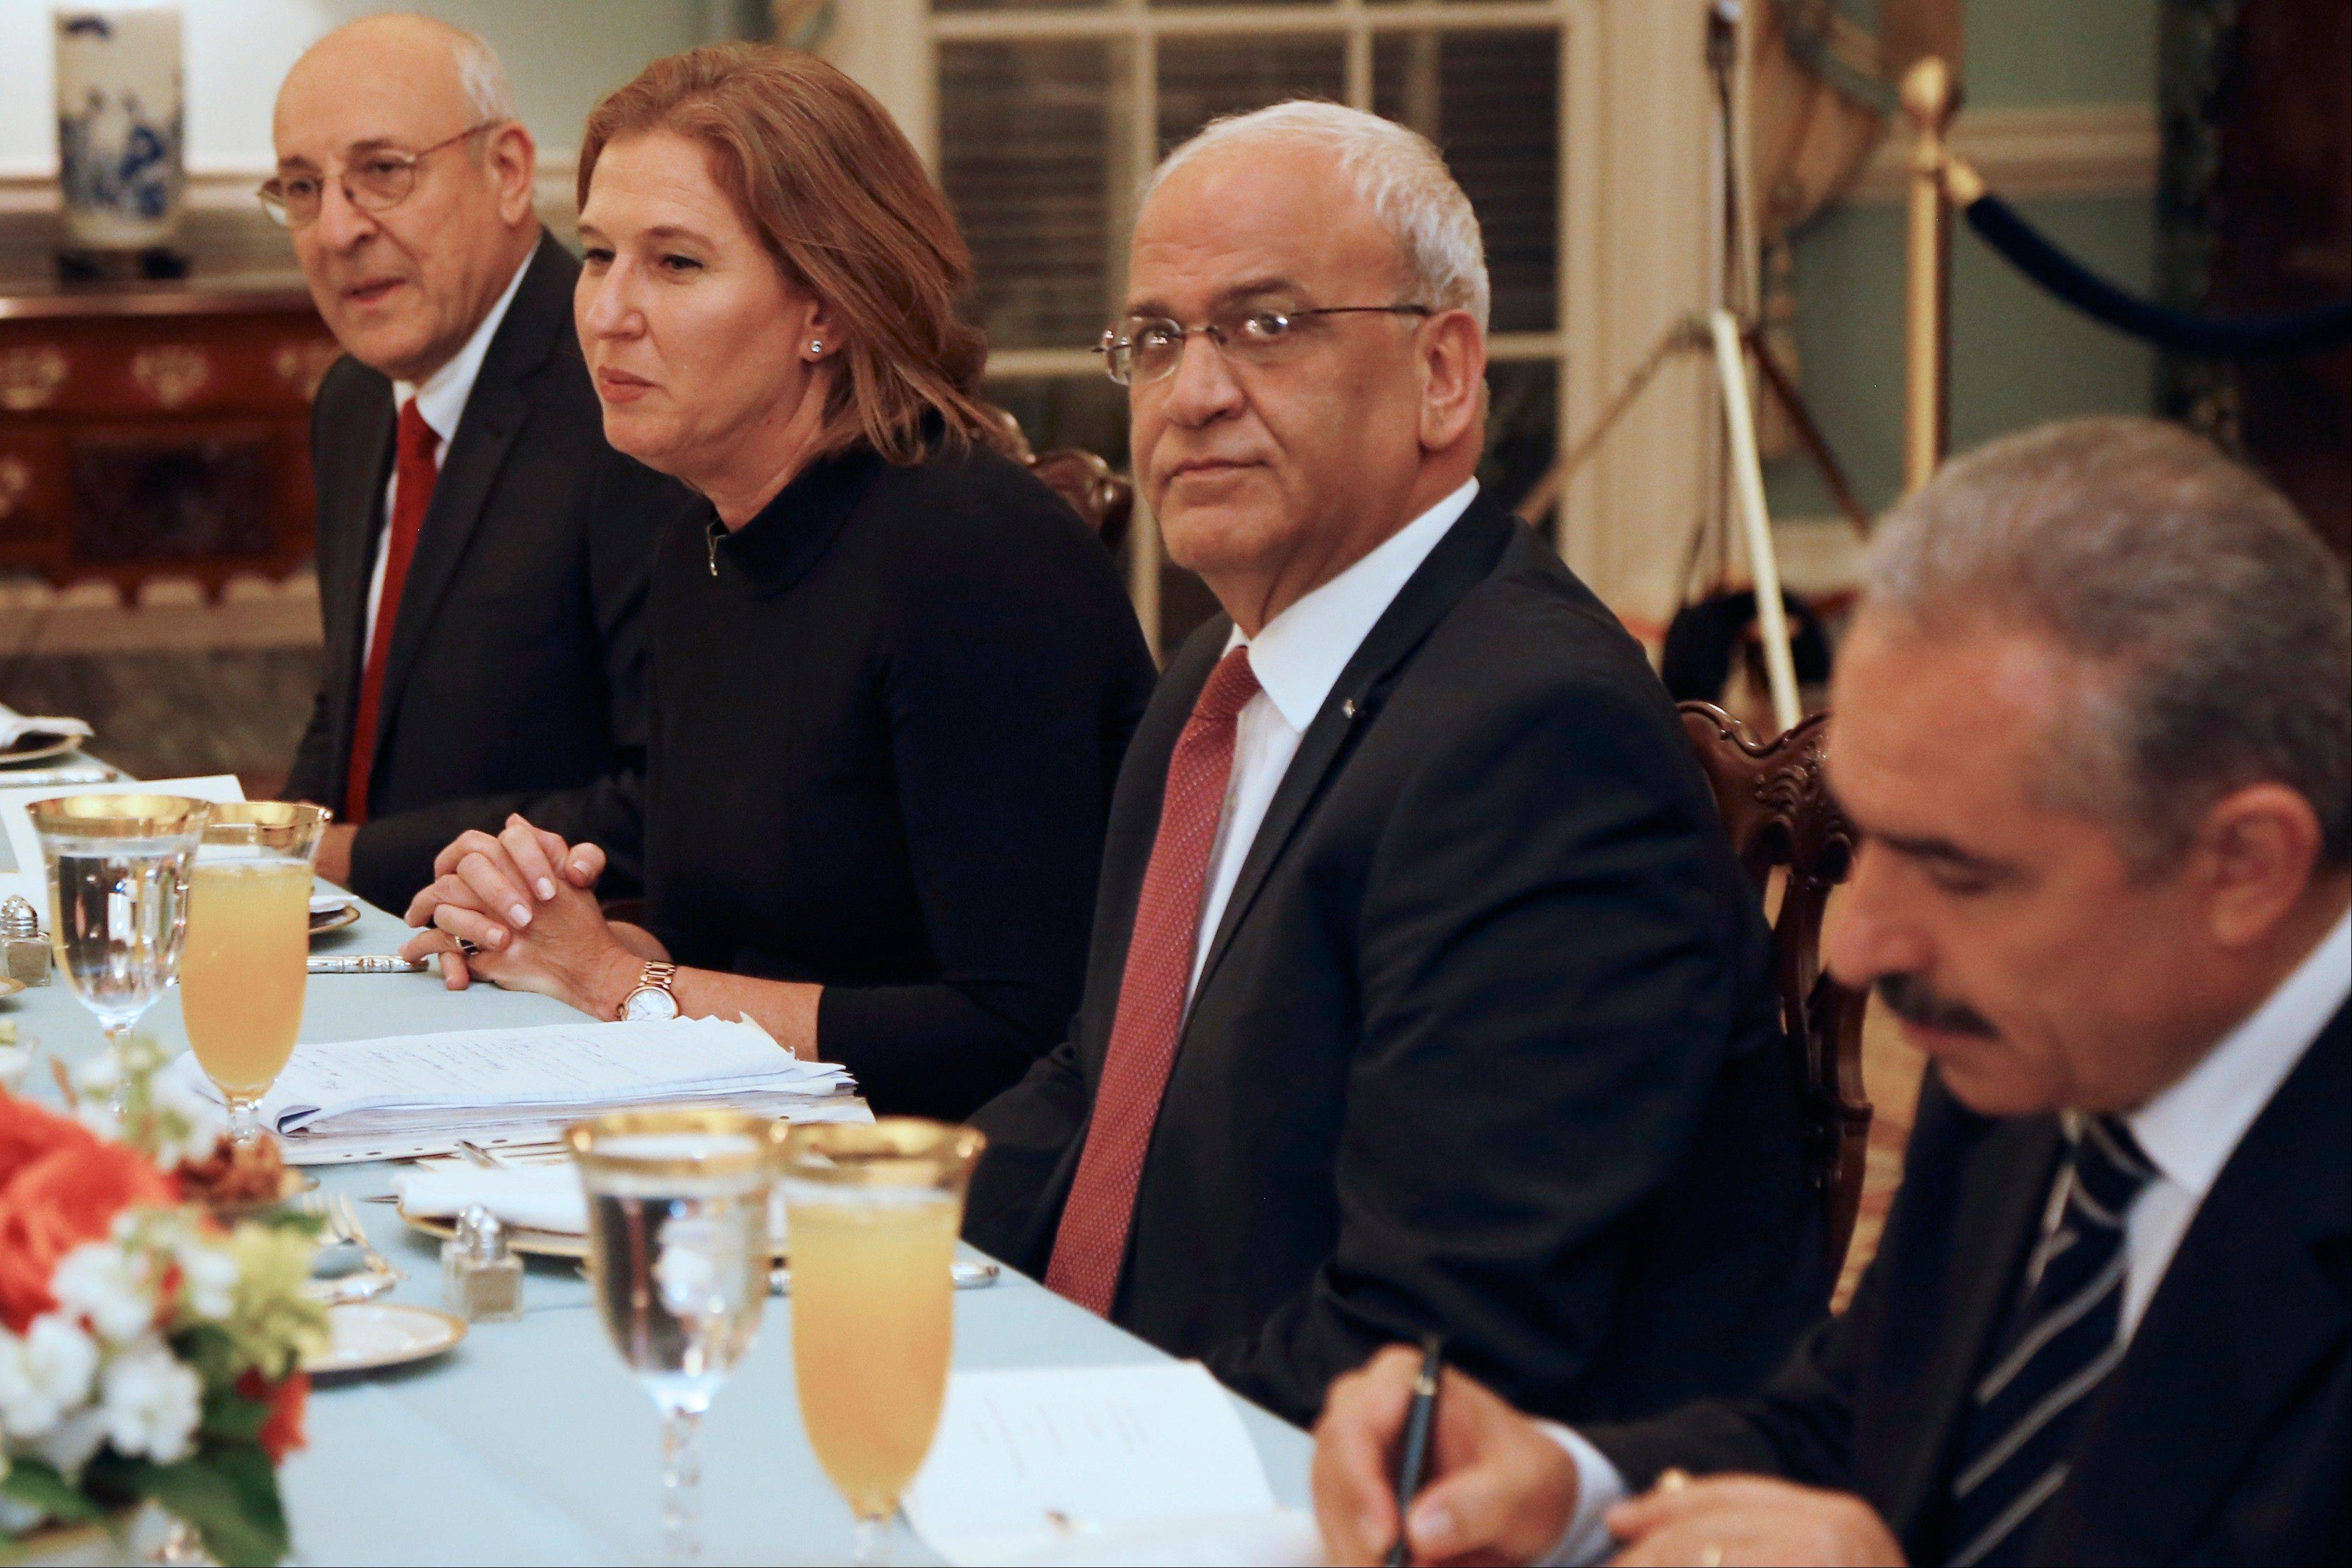 Israel's Justice Minister and chief negotiator Tzipi Livni, second from left, Palestinian chief negotiator Saeb Erekat, second right, Yitzhak Molcho, an adviser to Israeli Prime Minister Benjamin Netanyahu, left, and Mohammed Shtayyeh, aide to Palestinian President Mahmoud Abbas, right, attend an Iftar dinner, which celebrates Ramadan, hosted by Secretary of State John Kerry at the State Department Monday.